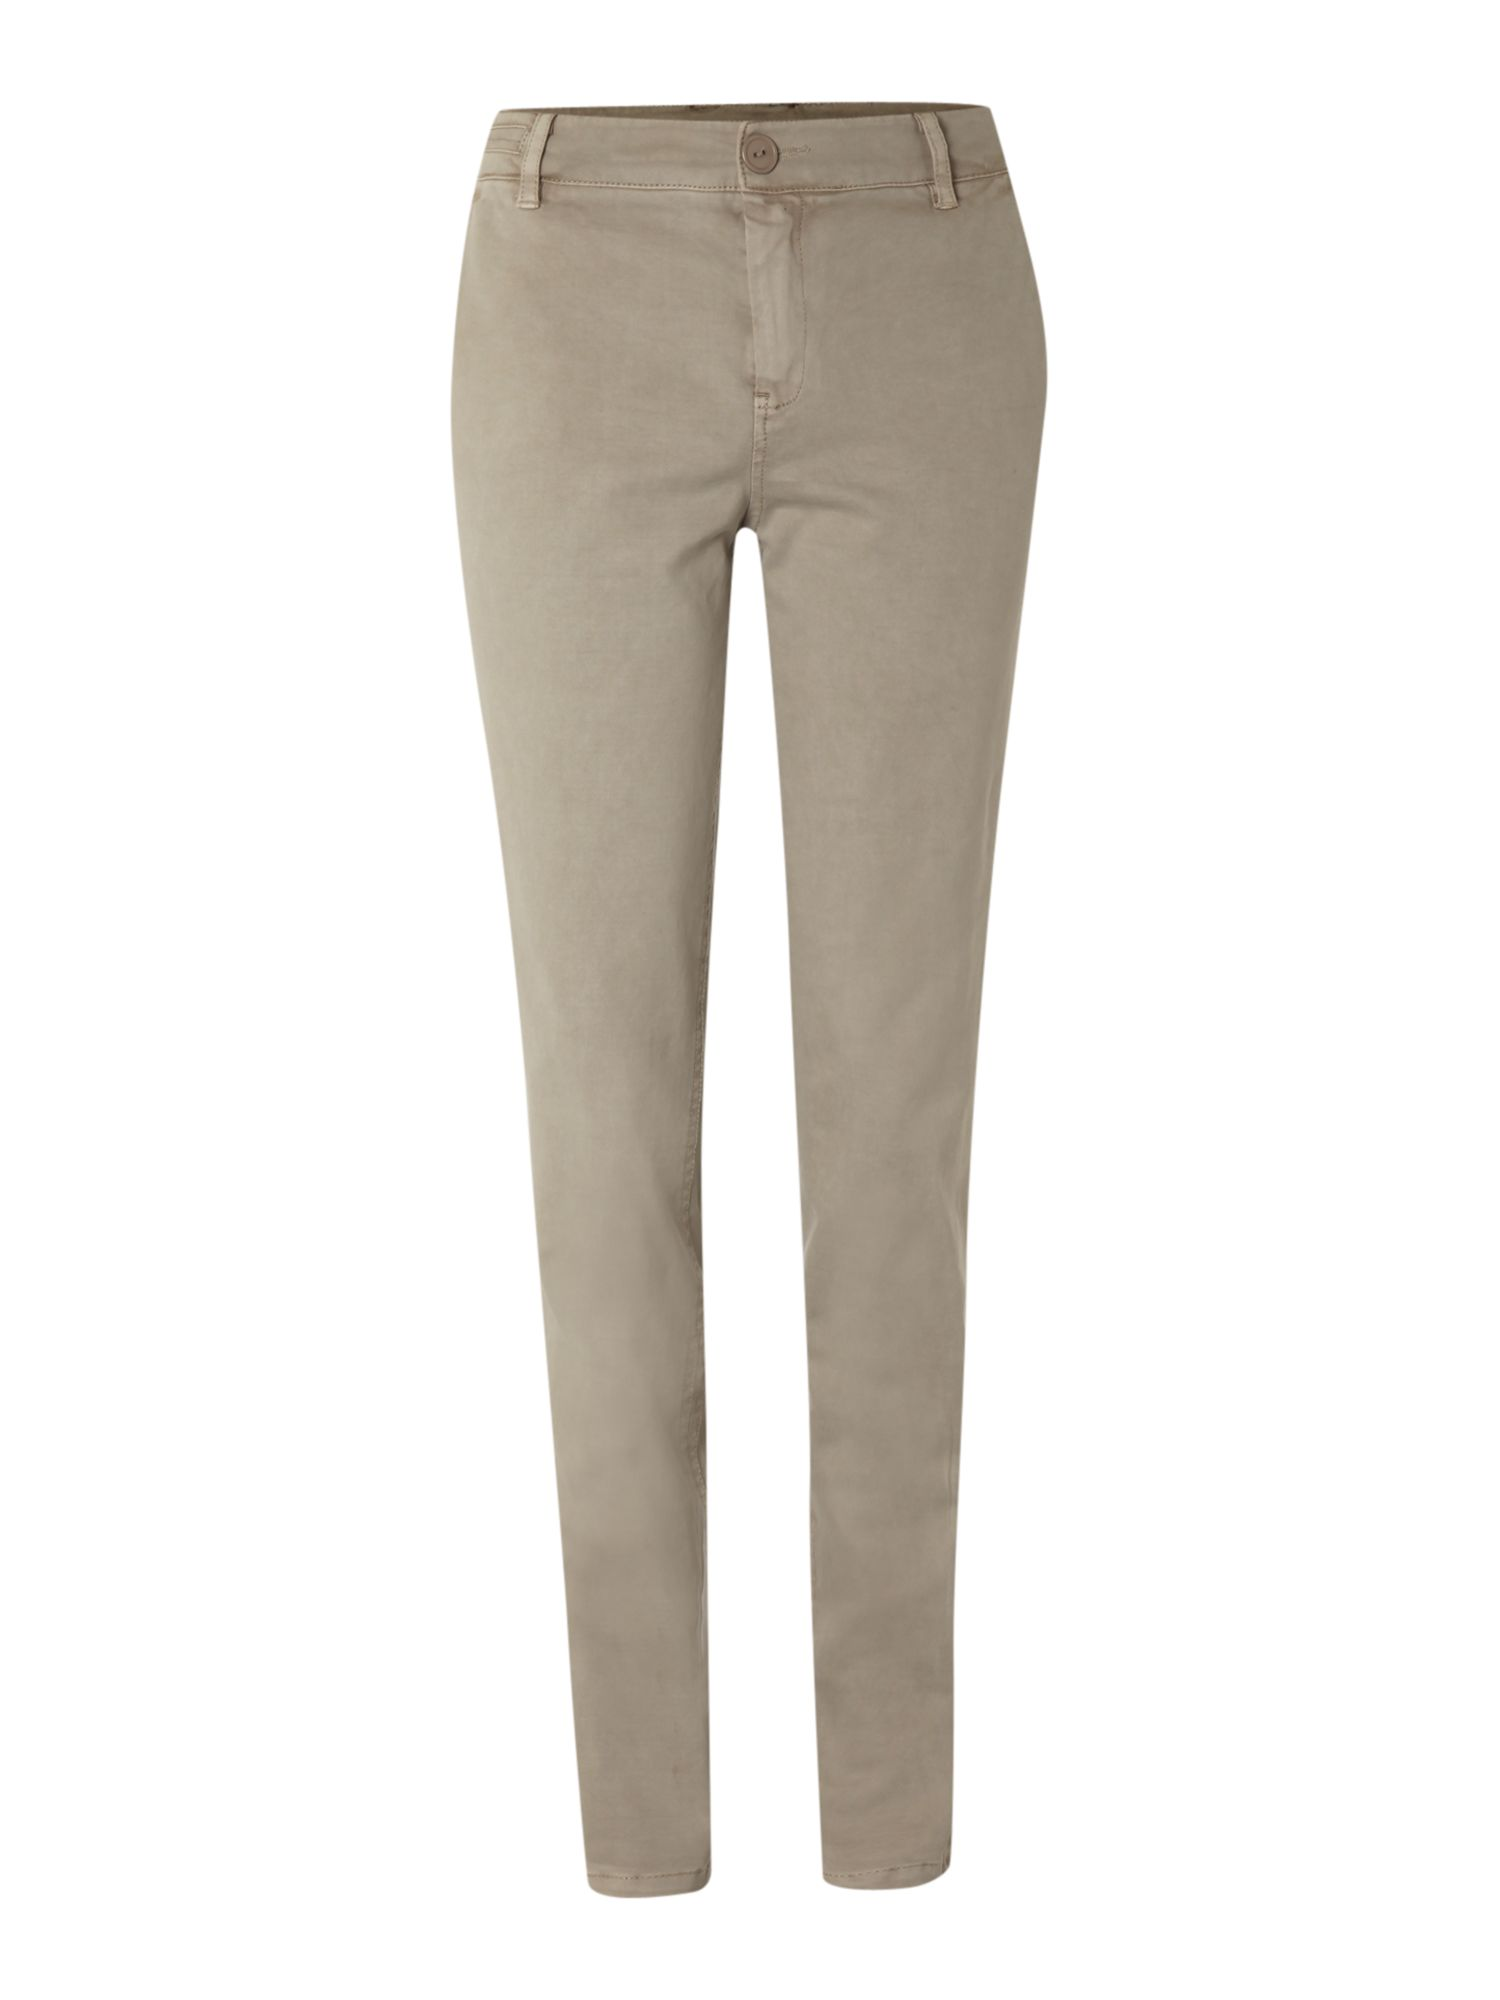 Ladies chino trousers